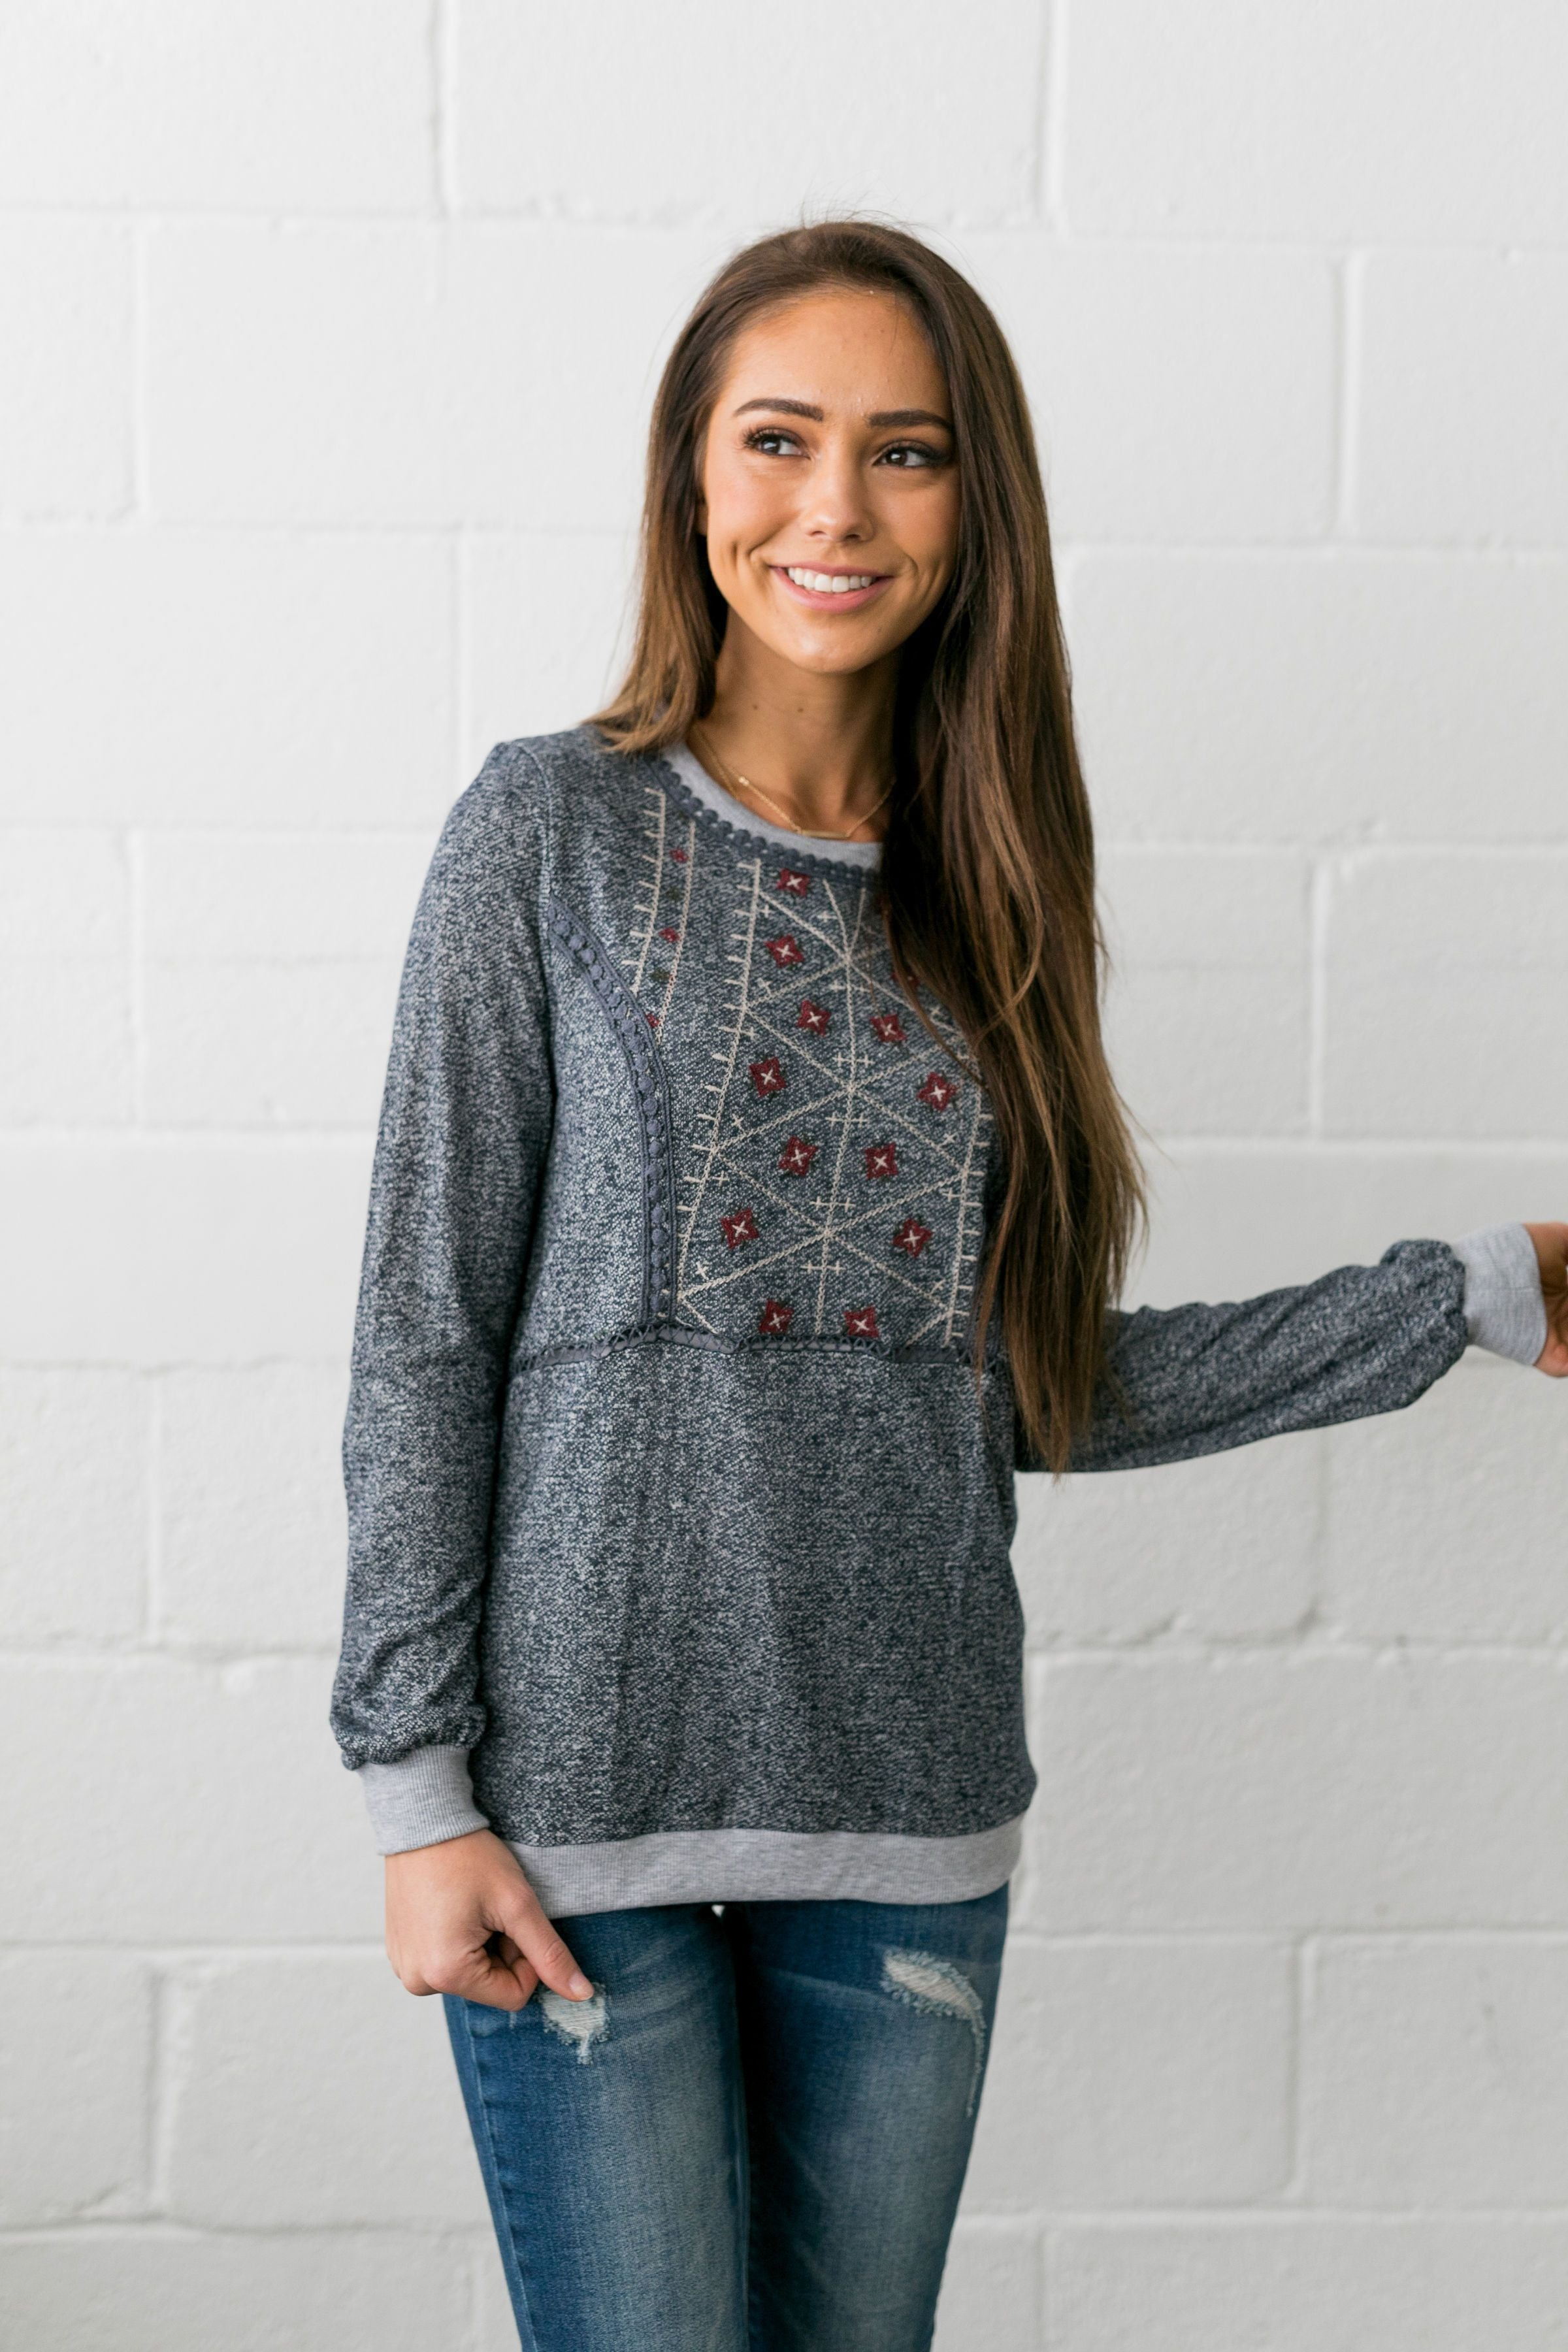 Casual Elegance Embroidered Top In Navy - ALL SALES FINAL